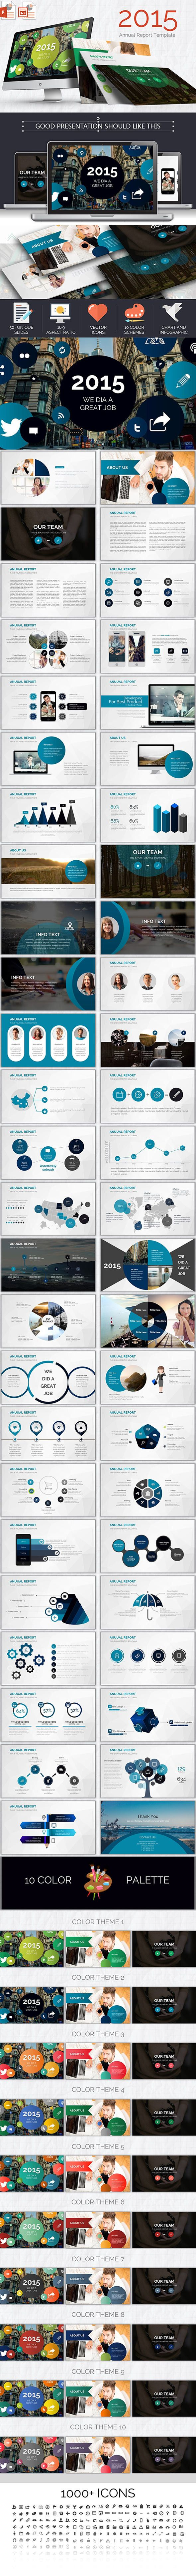 2015 anual powerpoint report template business powerpoint 2015 anual powerpoint report business powerpoint templatesppt templatepresentation designpresentation toneelgroepblik Choice Image